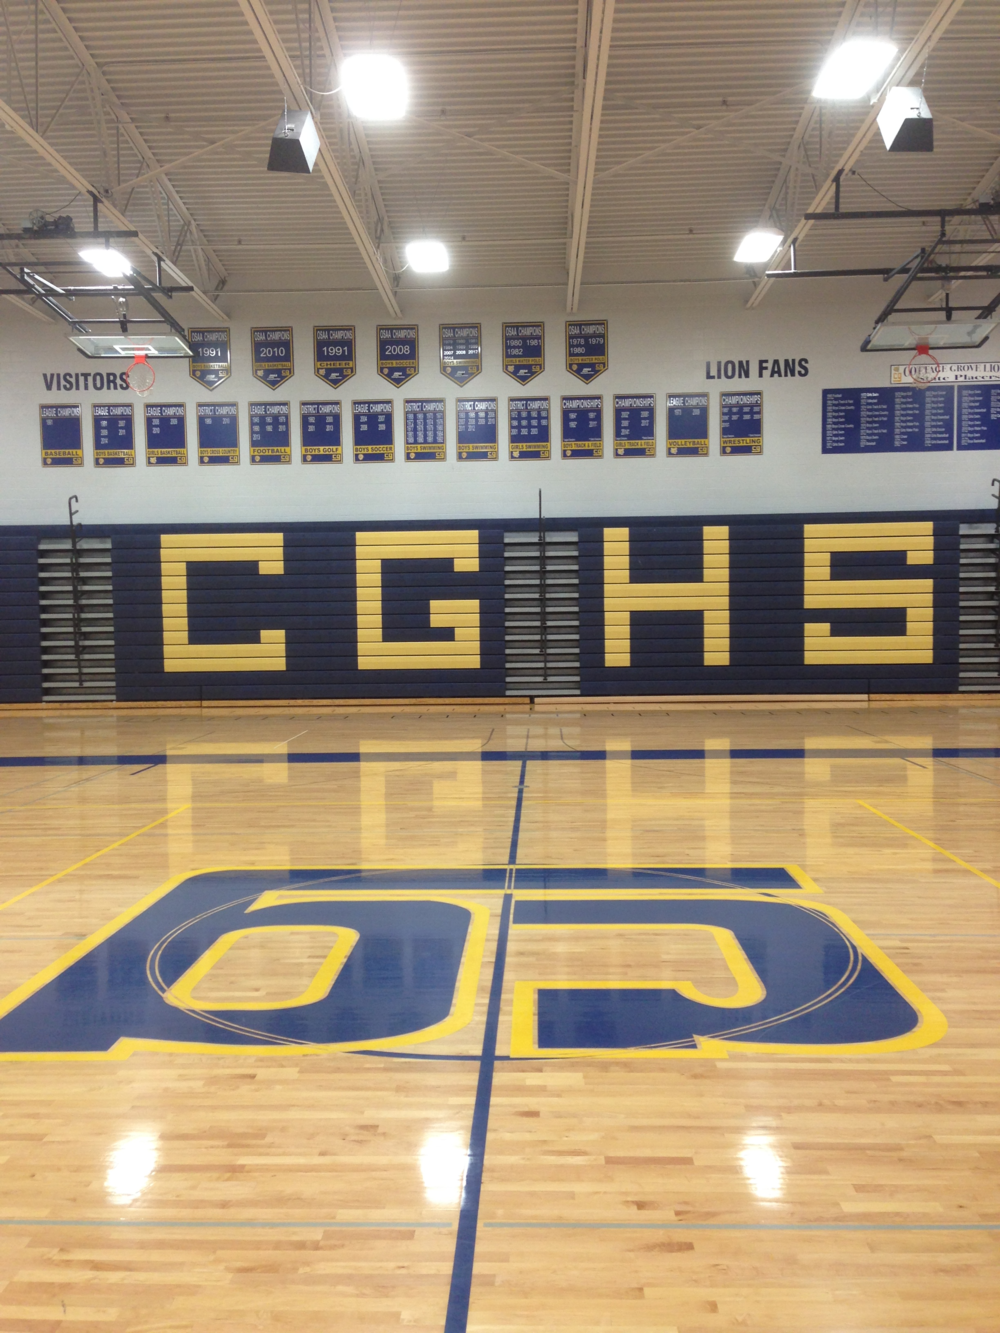 Commercial Lighting LED Upgrade for School Gymnasium